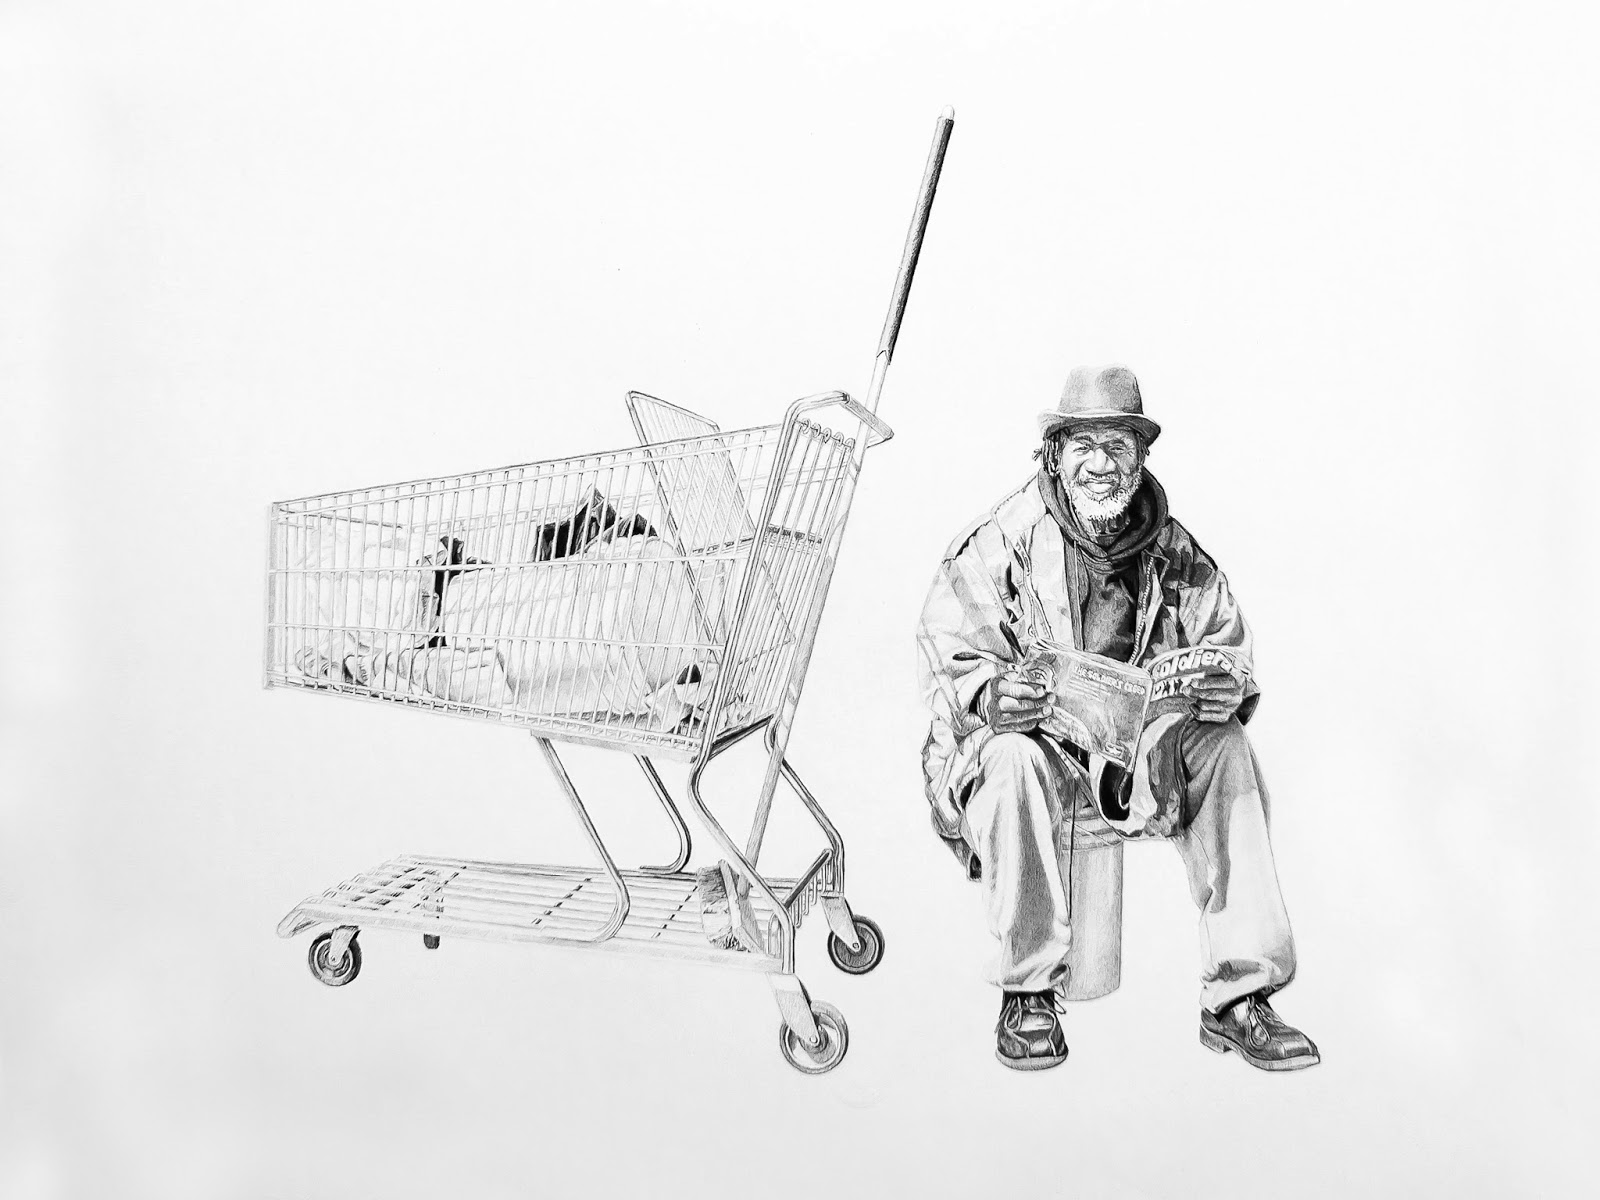 Bernard, Sitting | 16x24in | Charcoal and Graphite on Paper | 2013